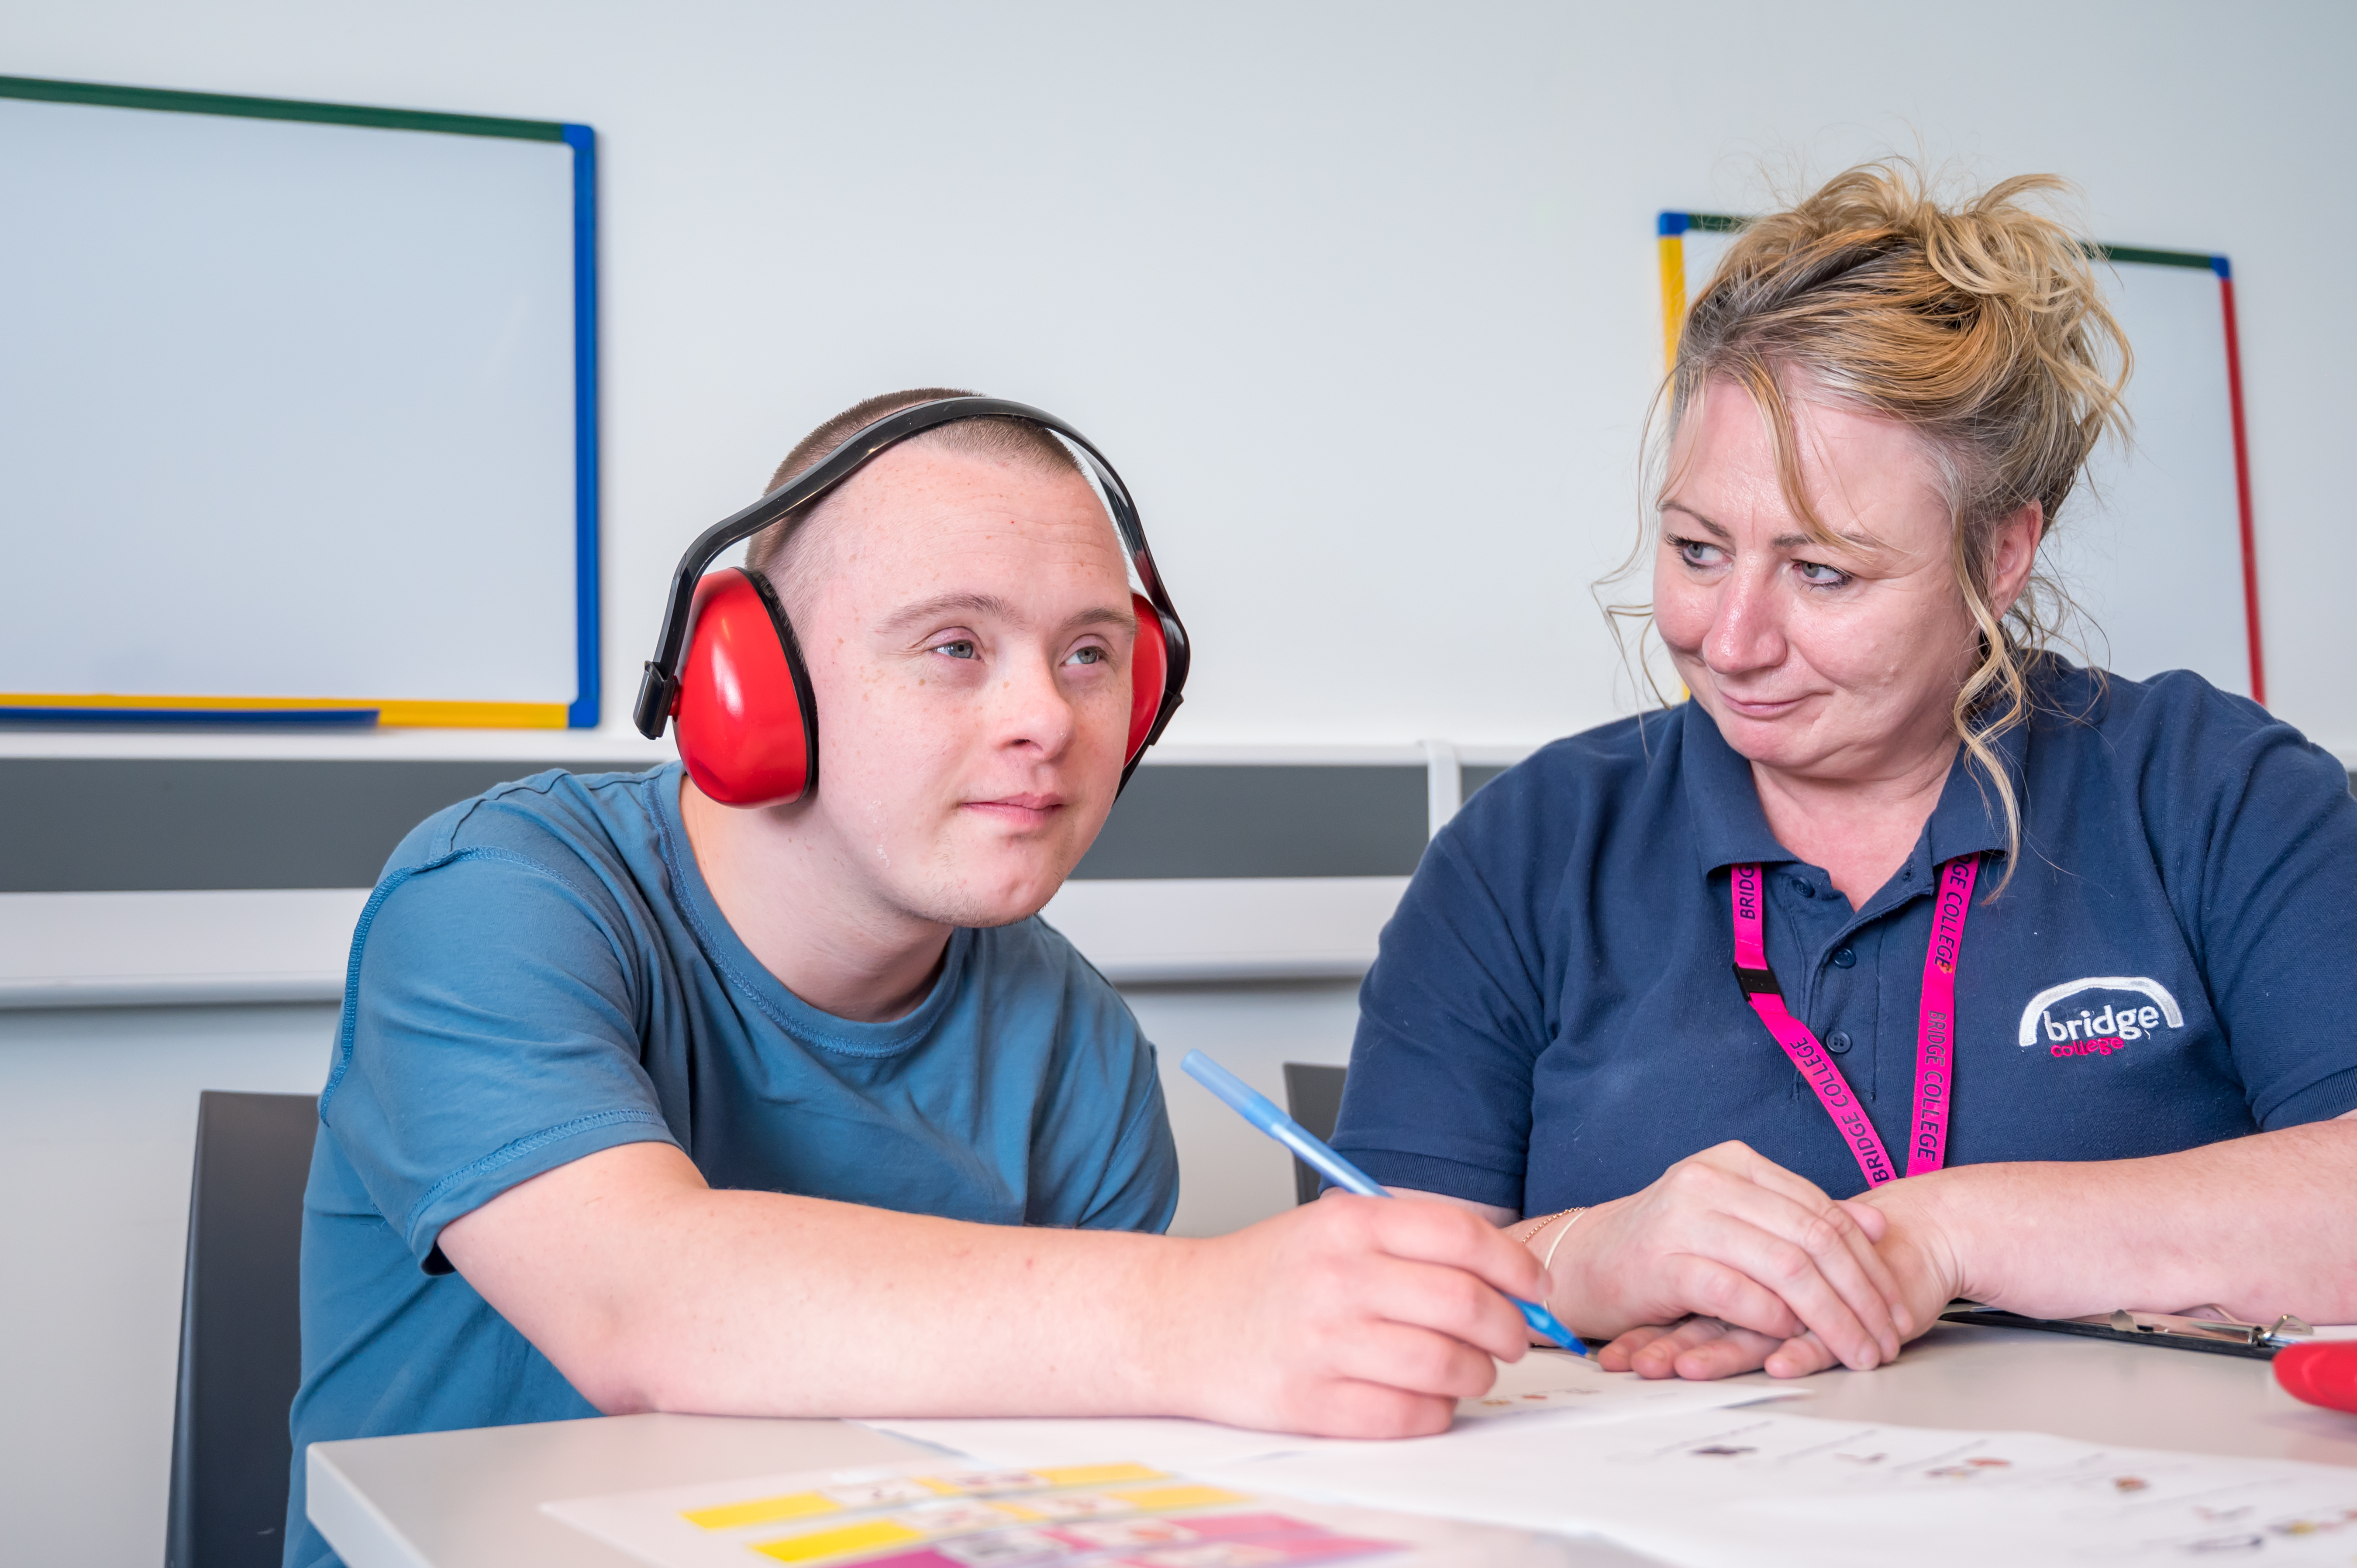 A Bridge student working with a teaching assistant